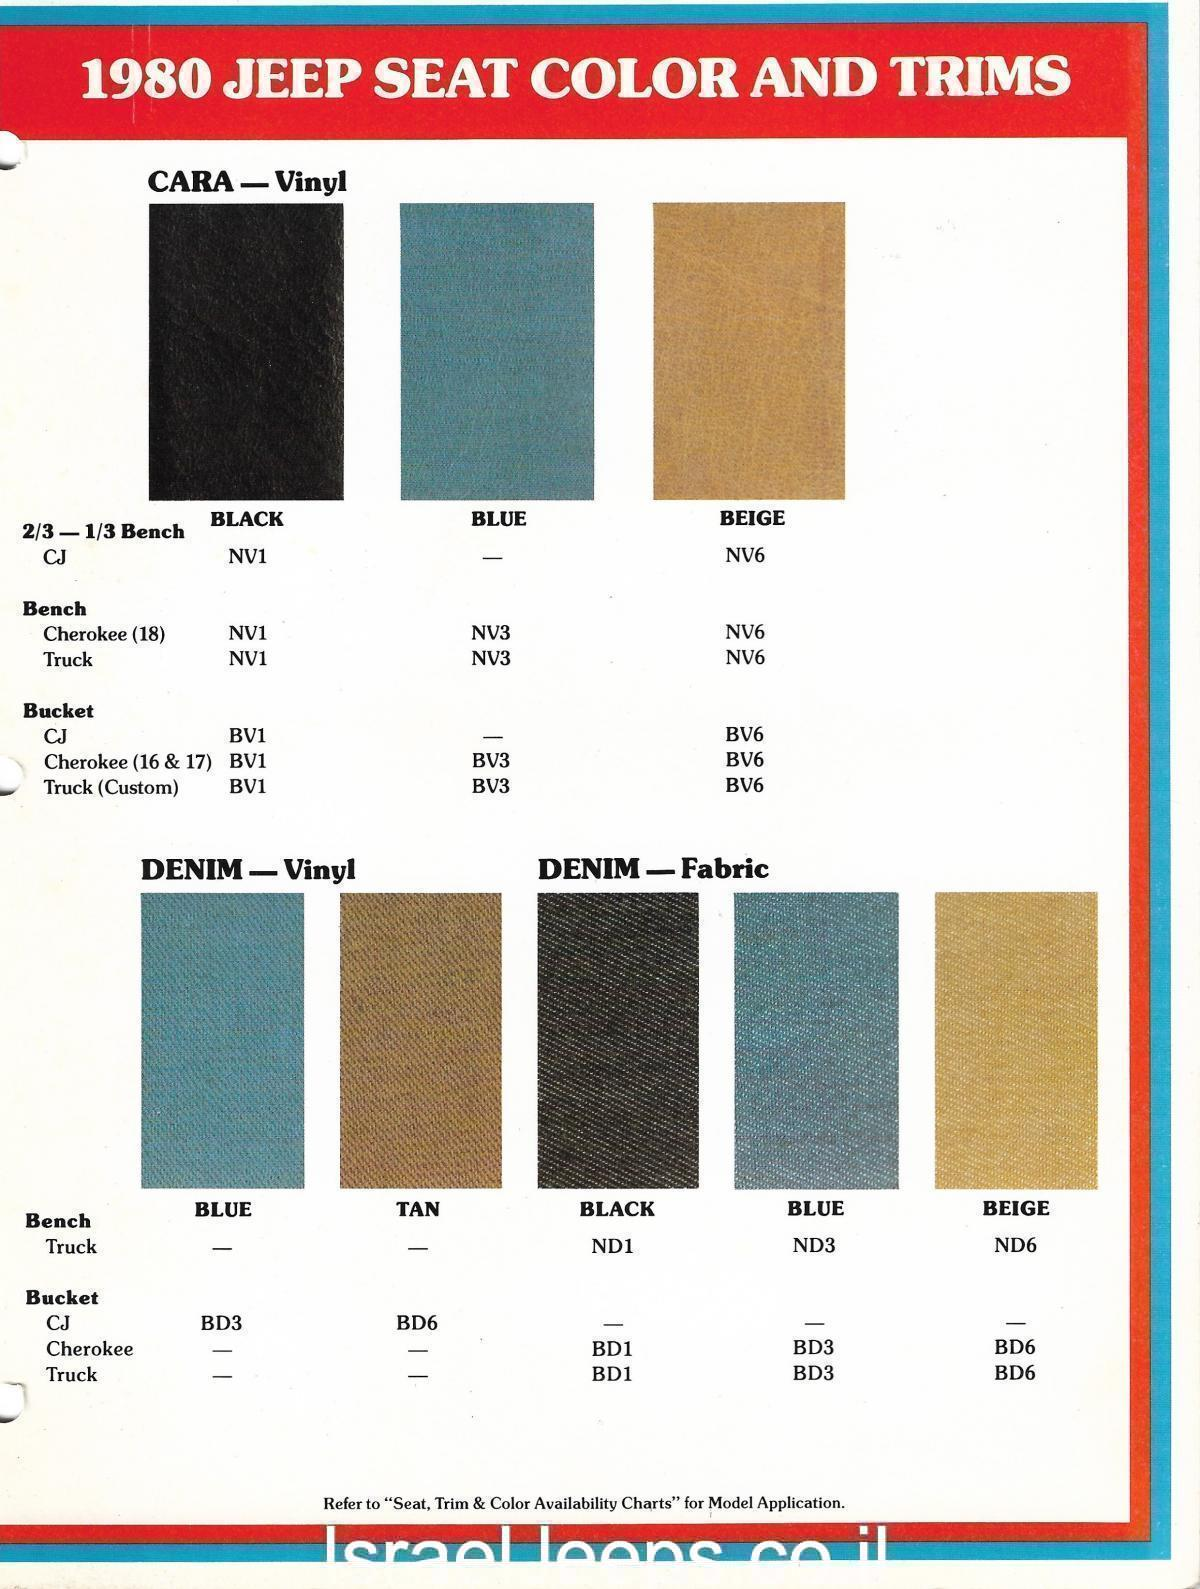 1980-jeep-seats-color